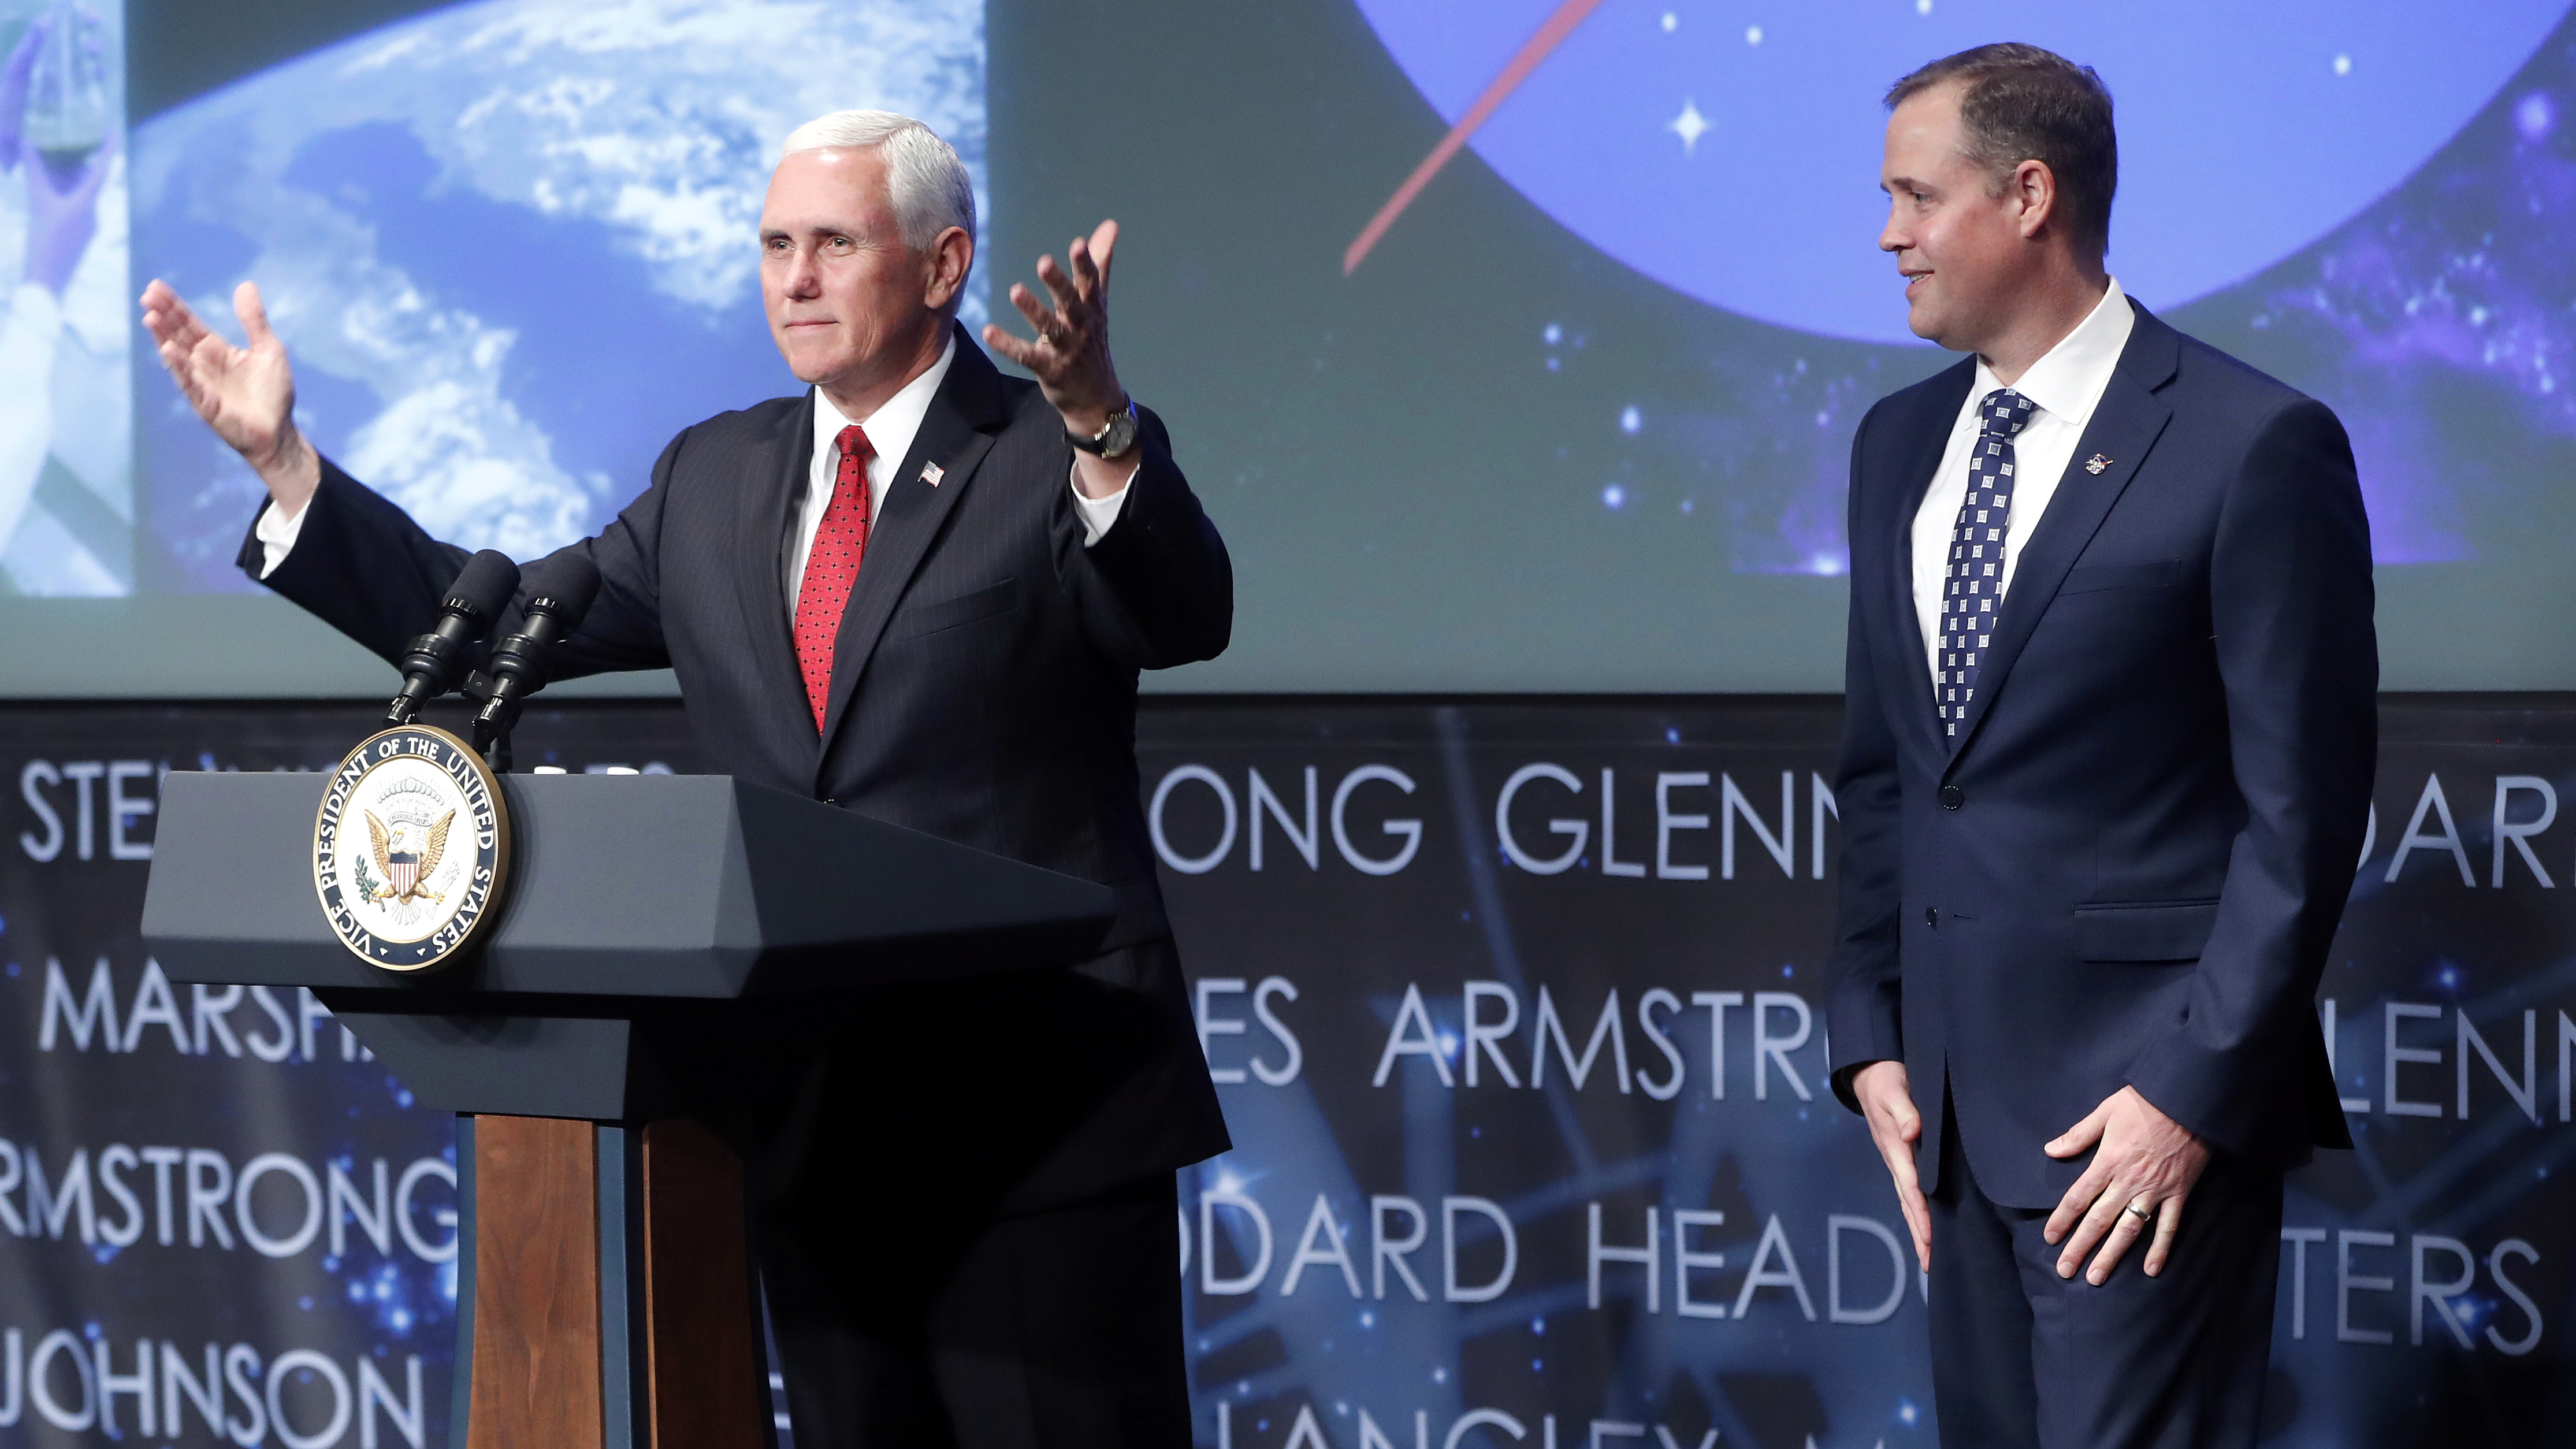 Vice President Mike Pence, left, gestures while speaking during the swearing-in ceremony for Jim Bridenstine, right, as the Administration of the National Aeronautics and Space Administration (NASA) during a ceremony, Monday, April 23, 2018, at NASA Headquarters in Washington.